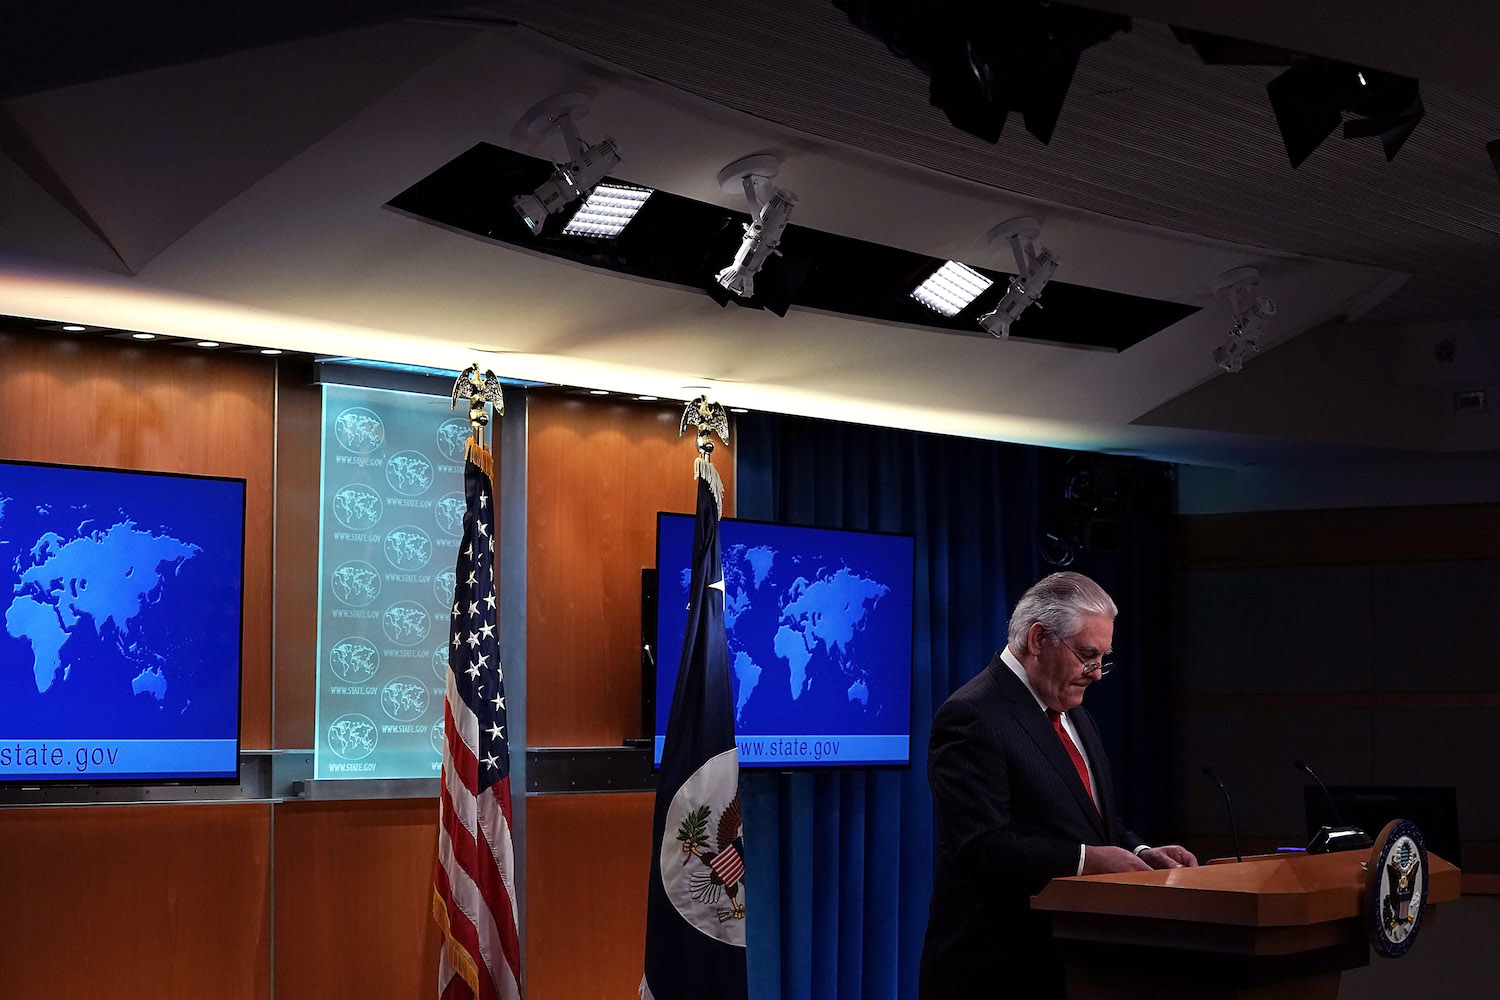 State Department Vacancies Increase Embassy Security Risks